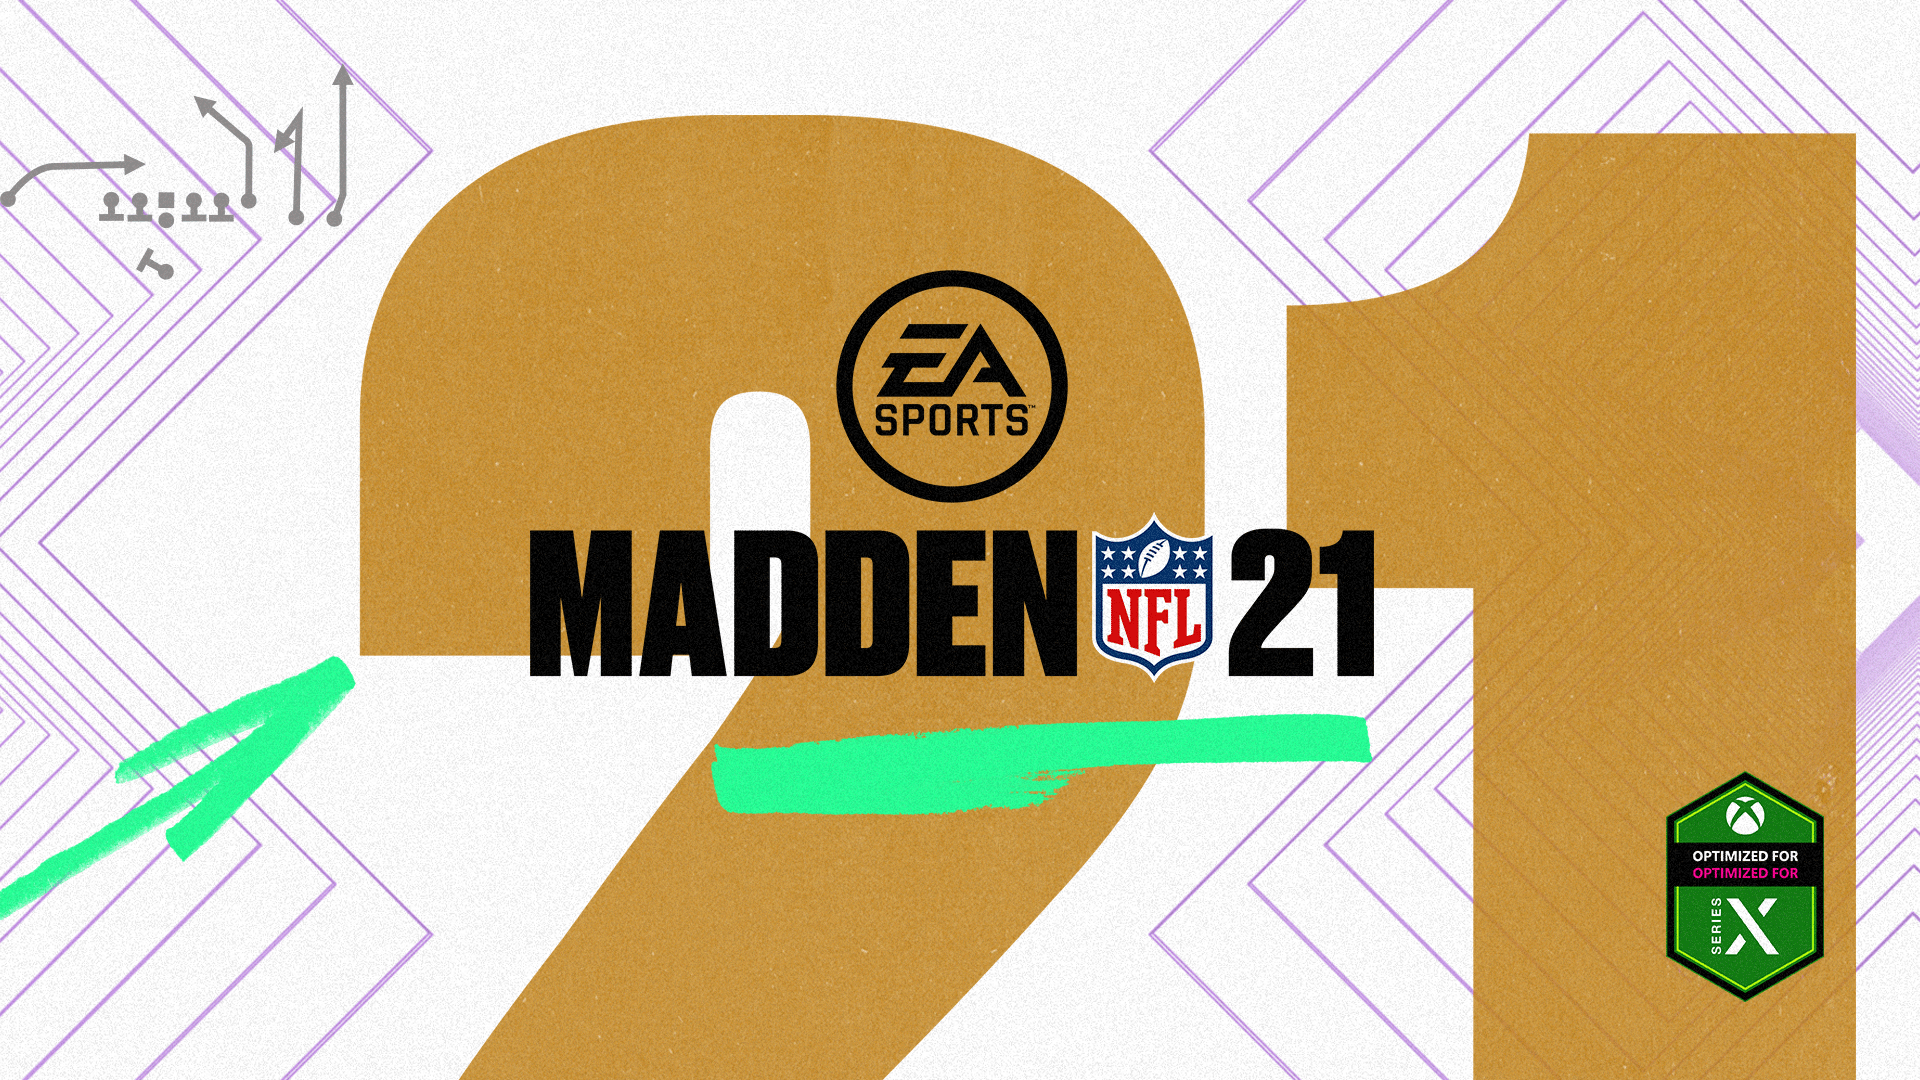 Madden Nfl 21 Will Be Available For Free On Xbox Series X Madden Nfl Ea Sports Madden